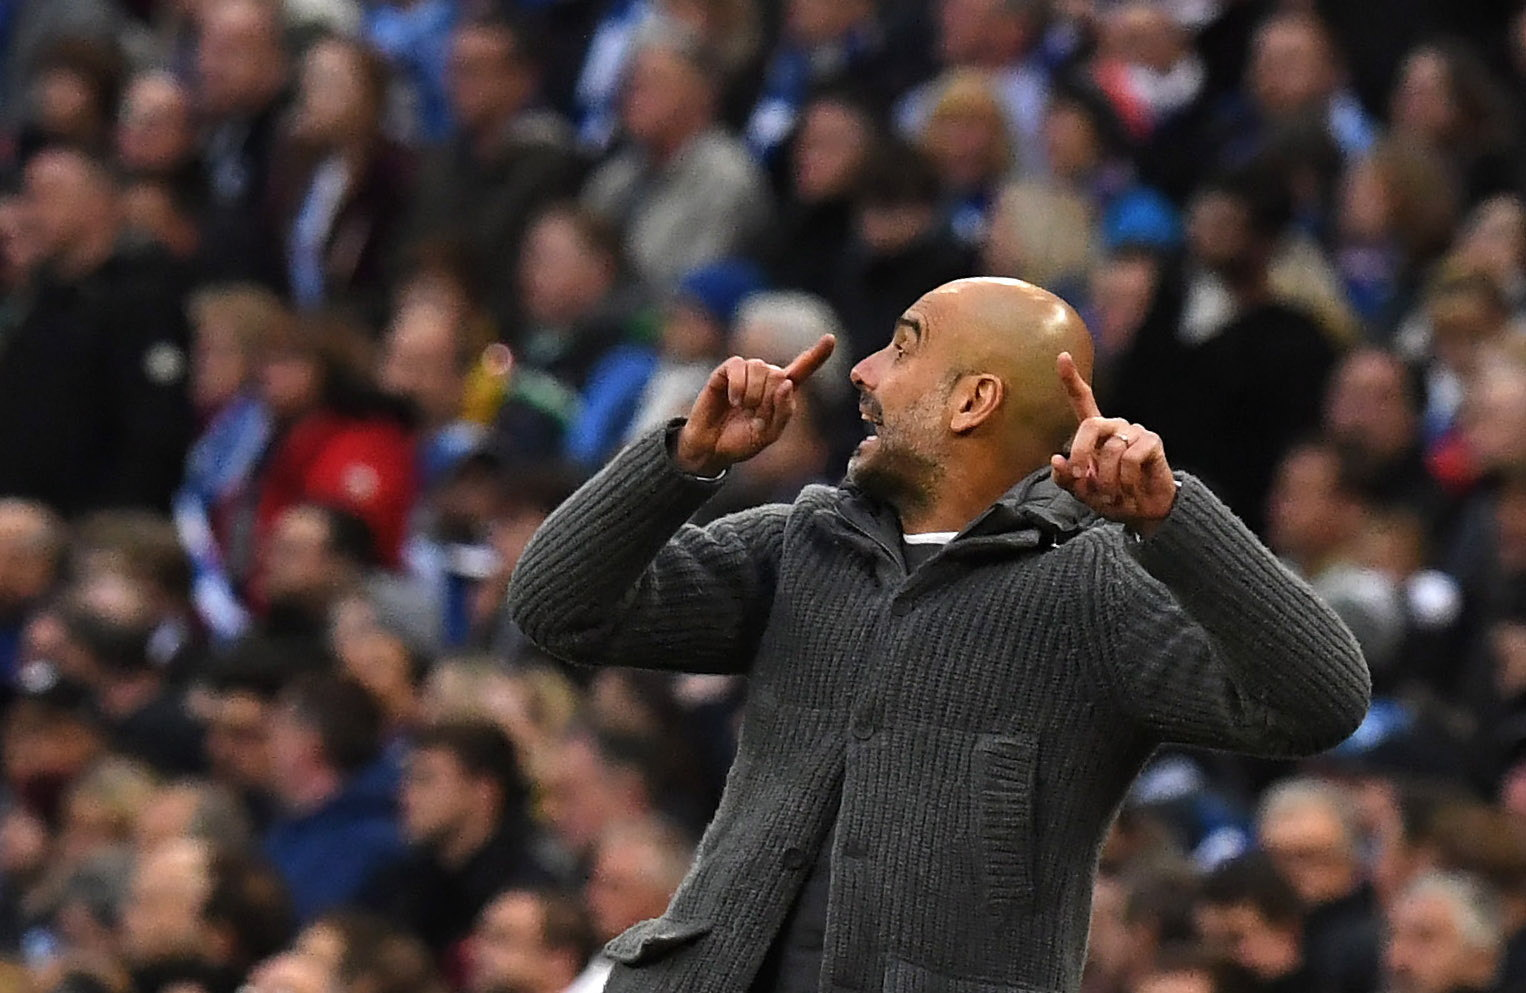 NGH2. London (United Kingdom), 06/04/2019.- Manchester City's manager Pep Guardiola reacts during the English FA Cup semi final soccer match Manchester City vs Brighton and Hove Ablion at Wembley Stadium in London, Britain, 06 April 2019. (Reino Unido, Londres) EFE/EPA/NEIL HALL EDITORIAL USE ONLY. No use with unauthorized audio, video, data, fixture lists, club/league logos or 'live' services. Online in-match use limited to 120 images, no video emulation. No use in betting, games or single club/league/player publications